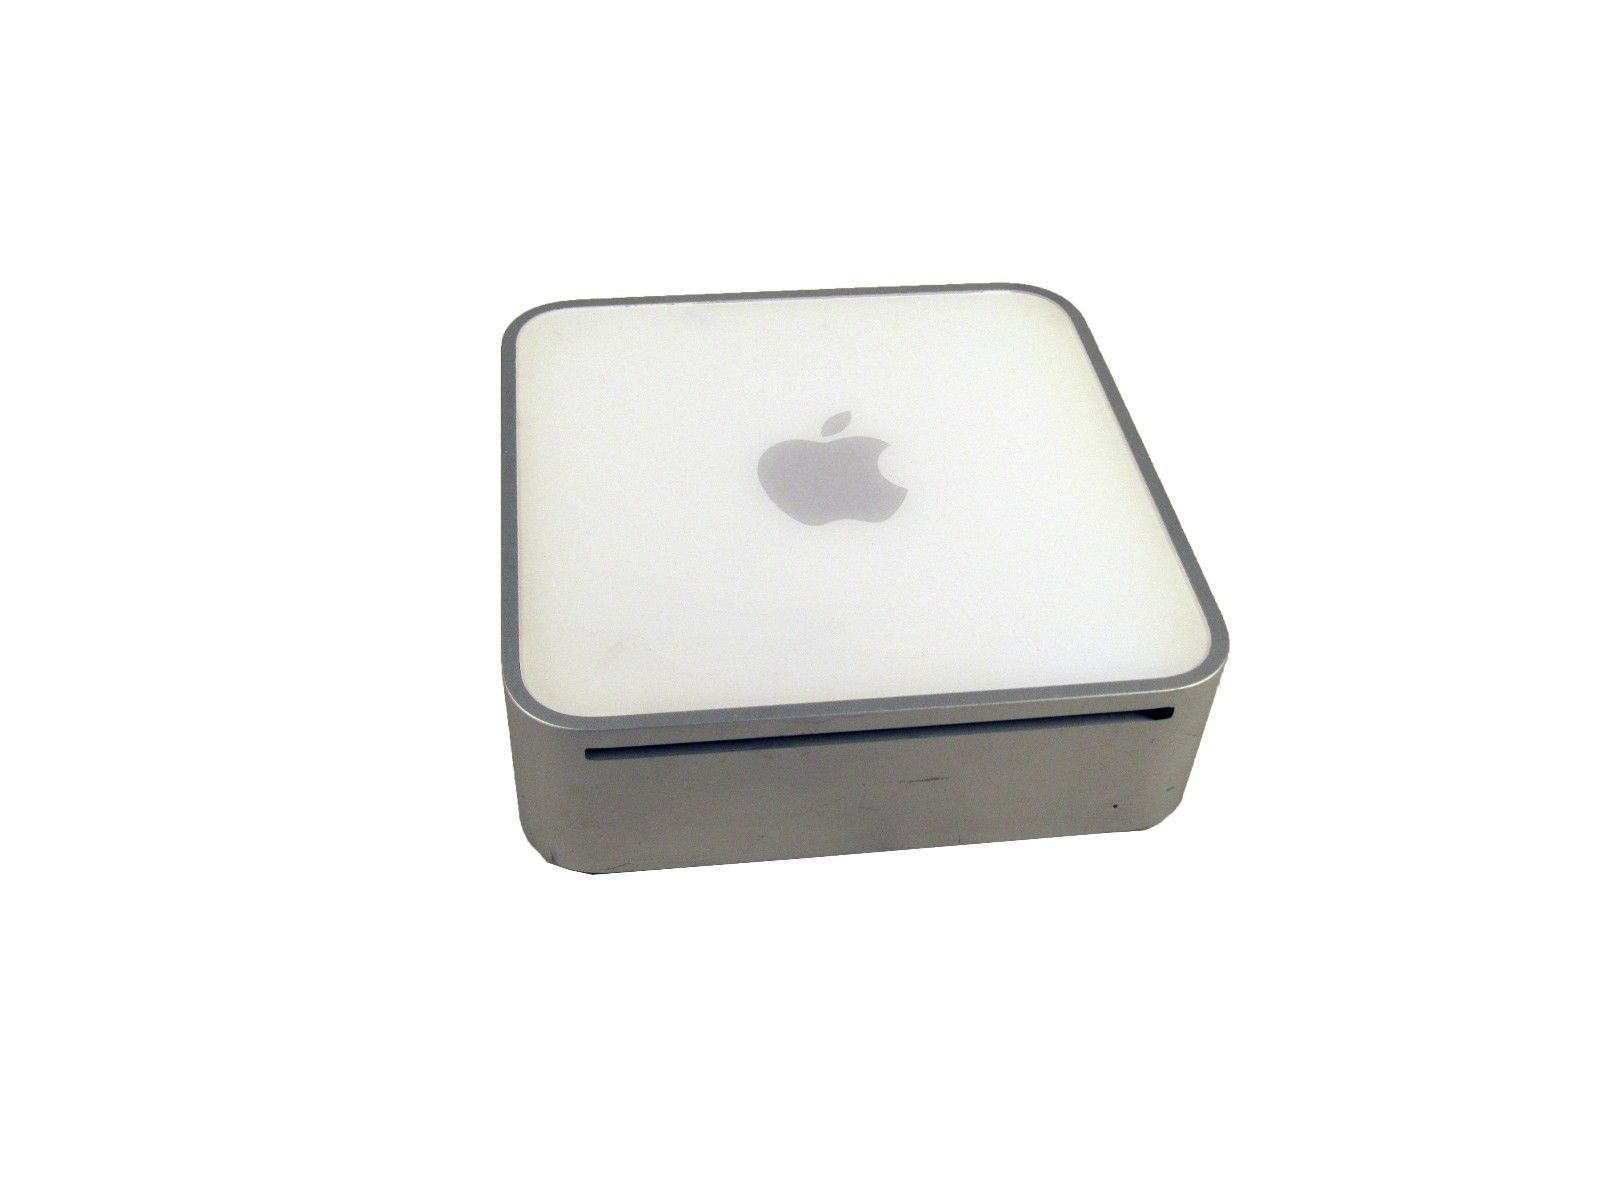 Apple A1176 Intel Core Solo 1.5GHz 512MB RAM 60GB HDD No OS